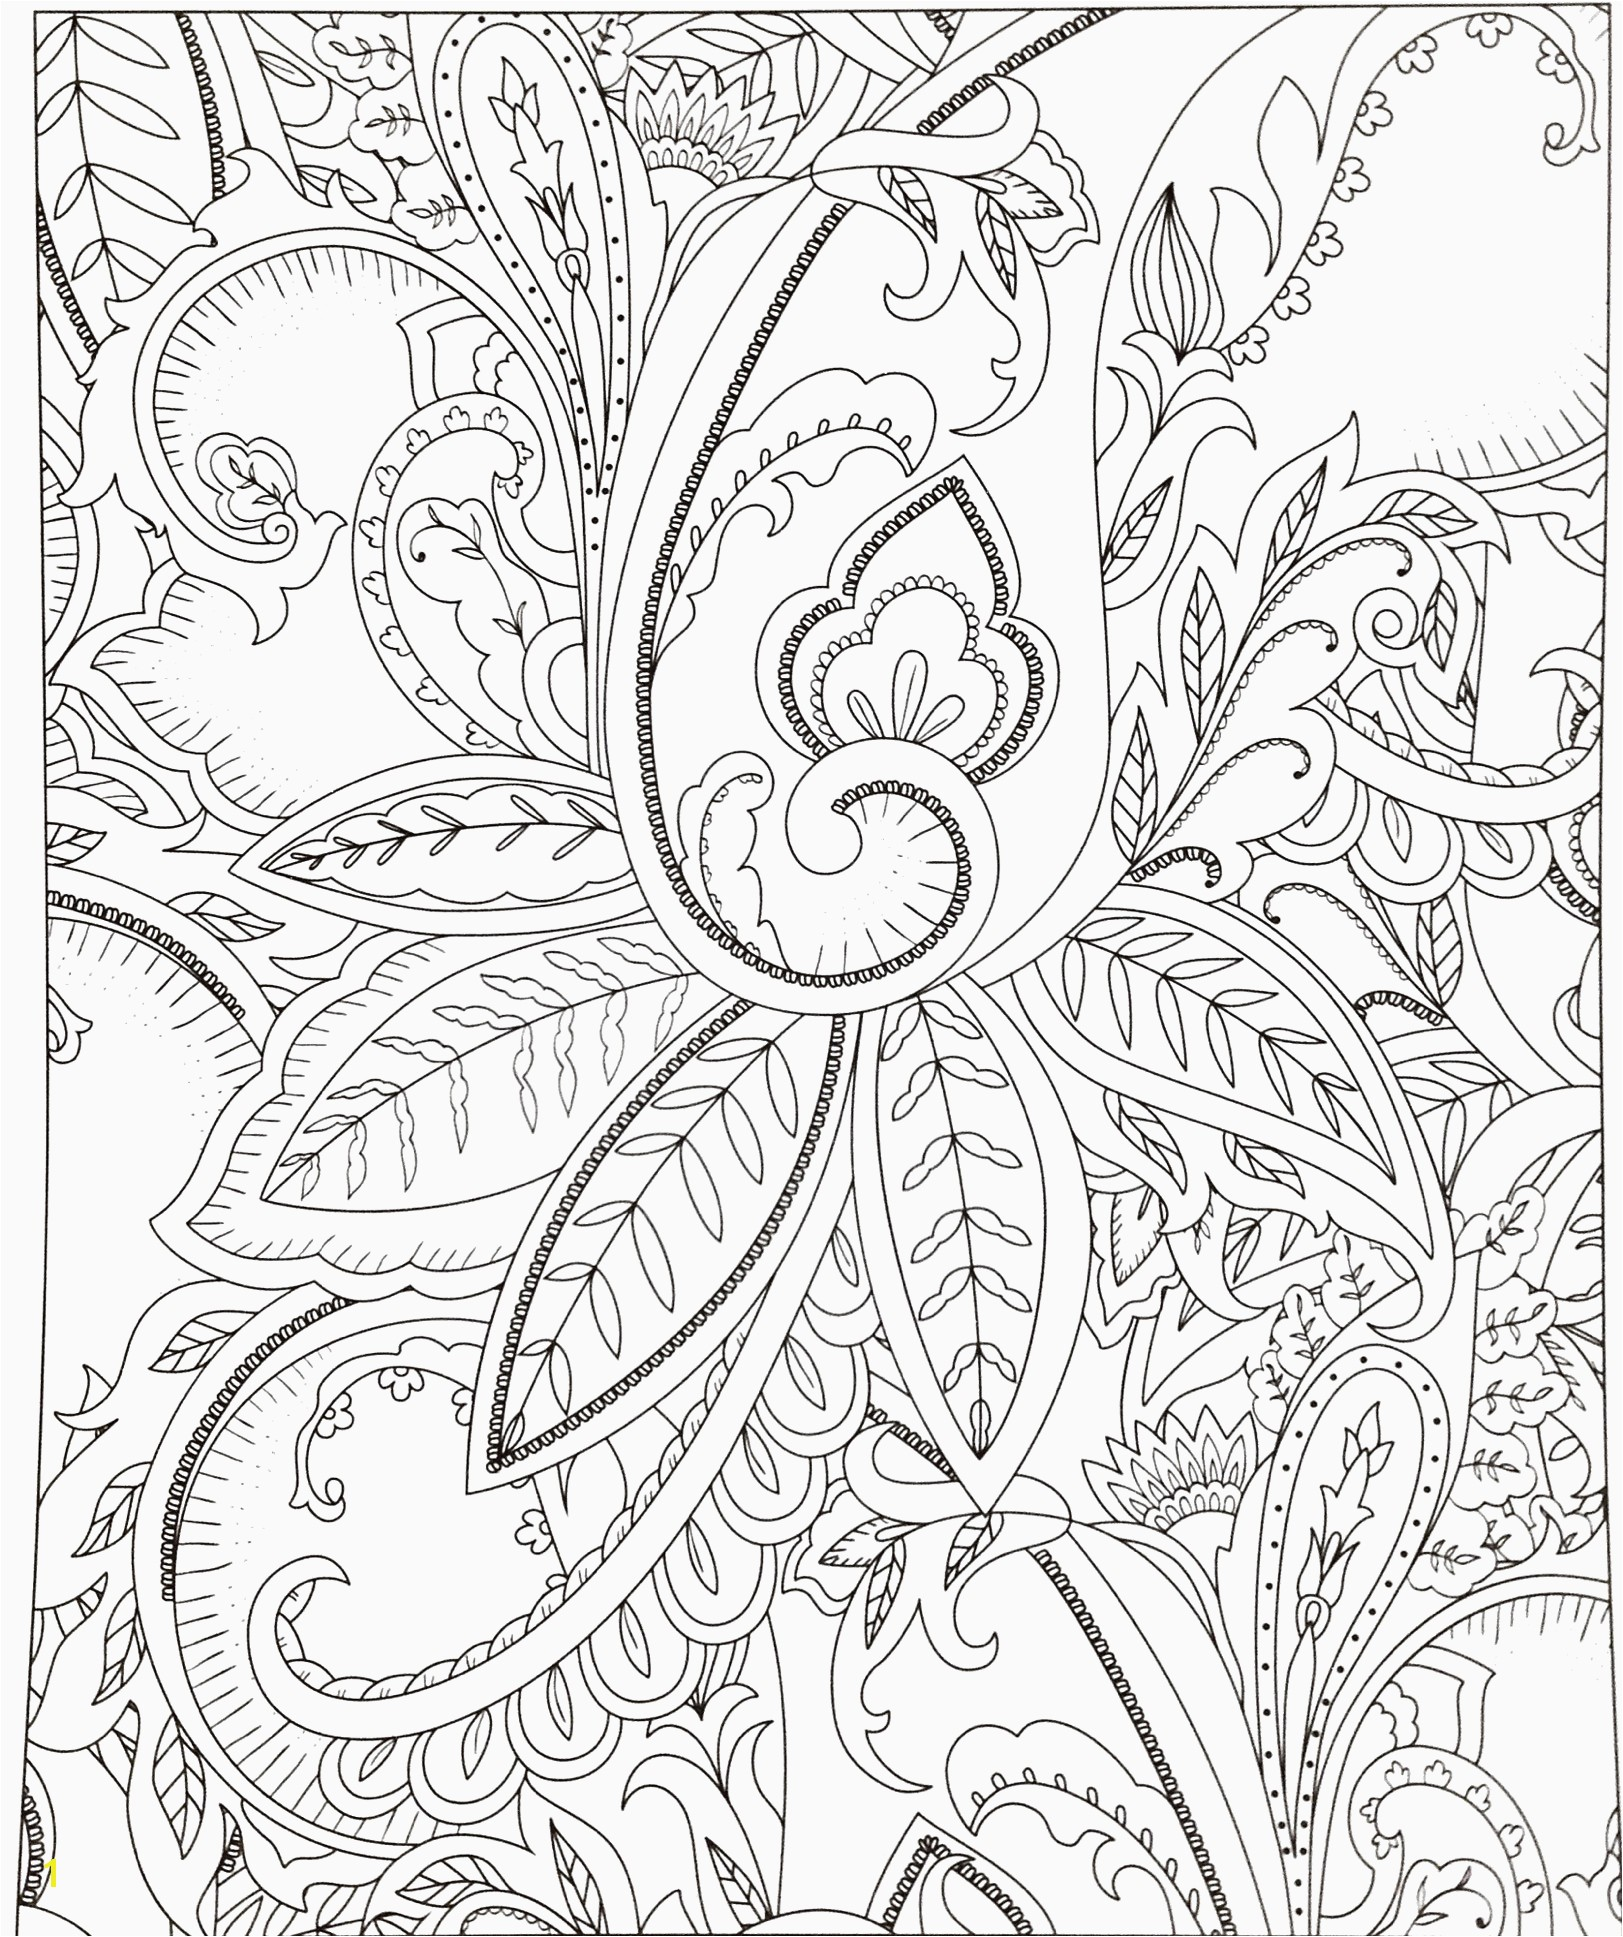 Placemat Coloring Page Awesome Free Halloween Coloring Page Lovable Printable Home Coloring Pages